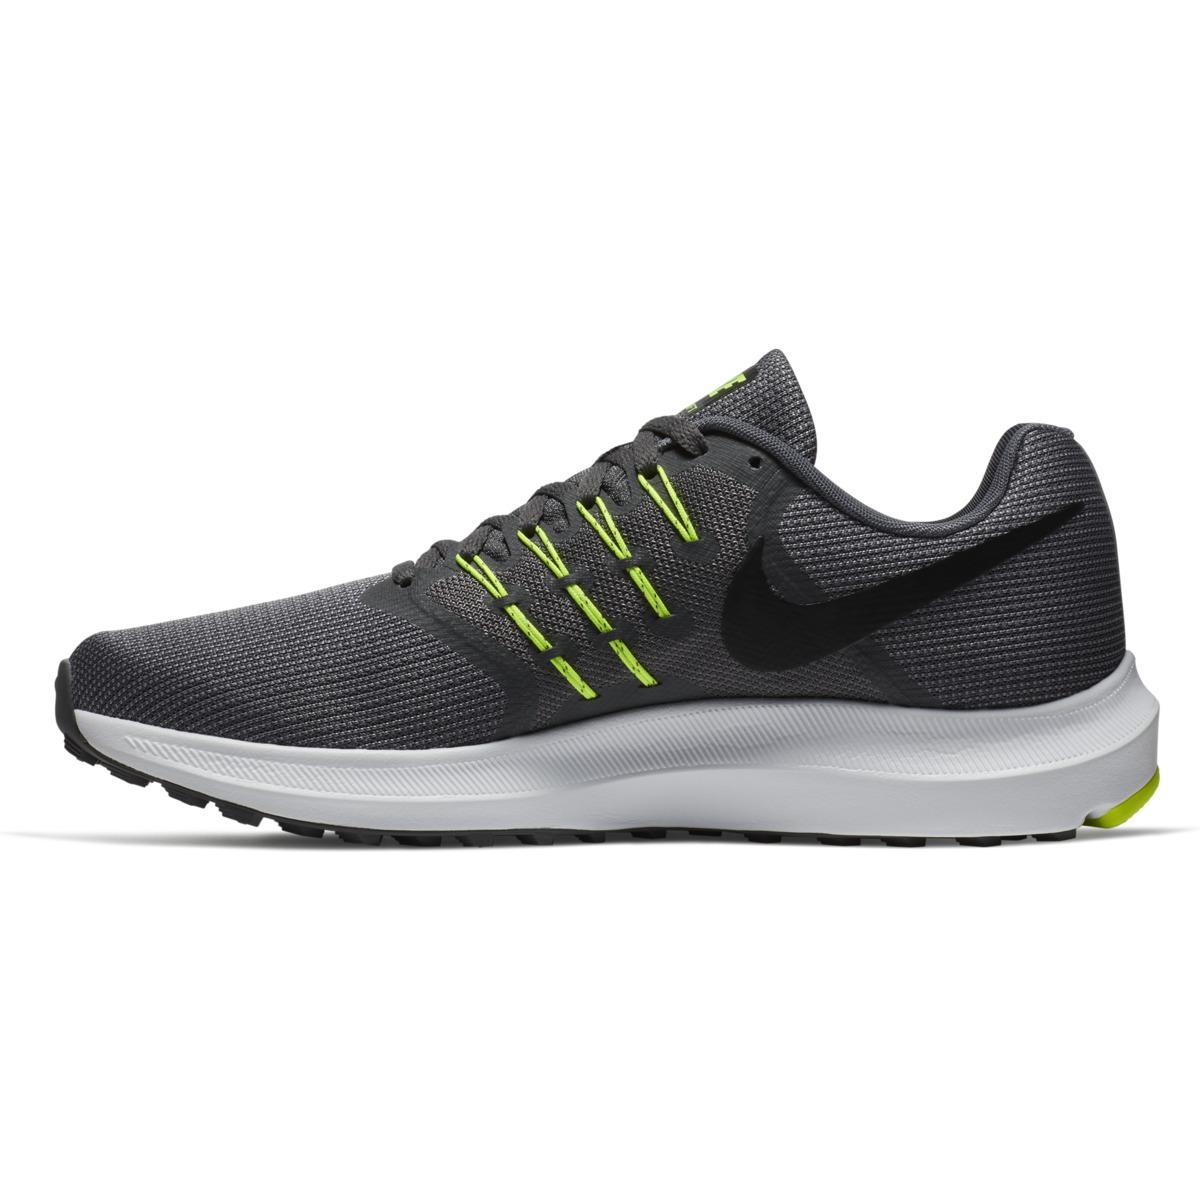 Nike - Gray Run Swift Running Shoes for Men - Lyst. View Fullscreen